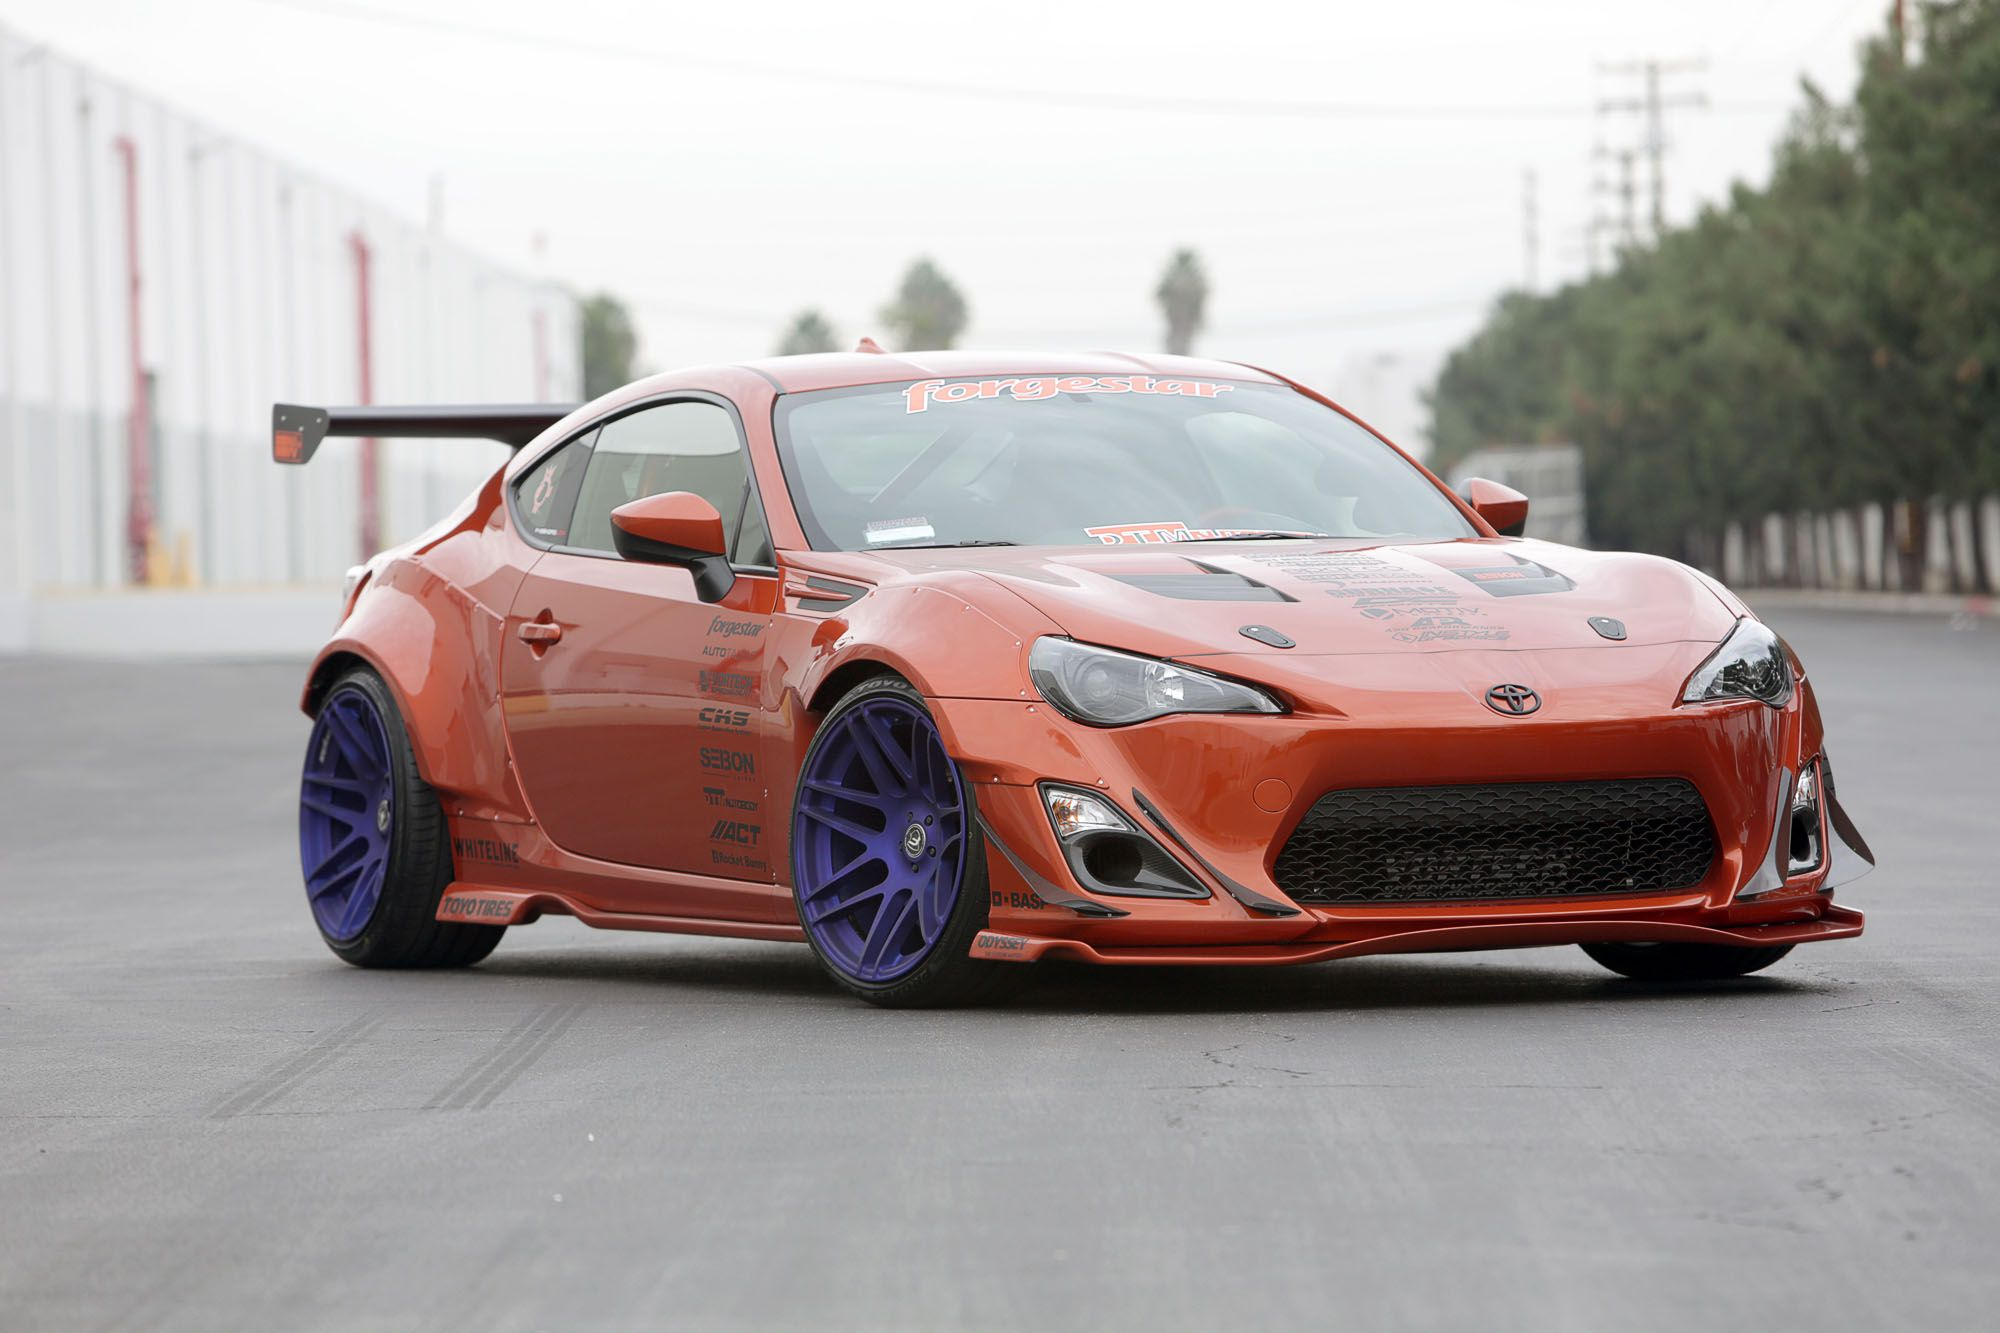 Pin On Fr S Brz And Gt86